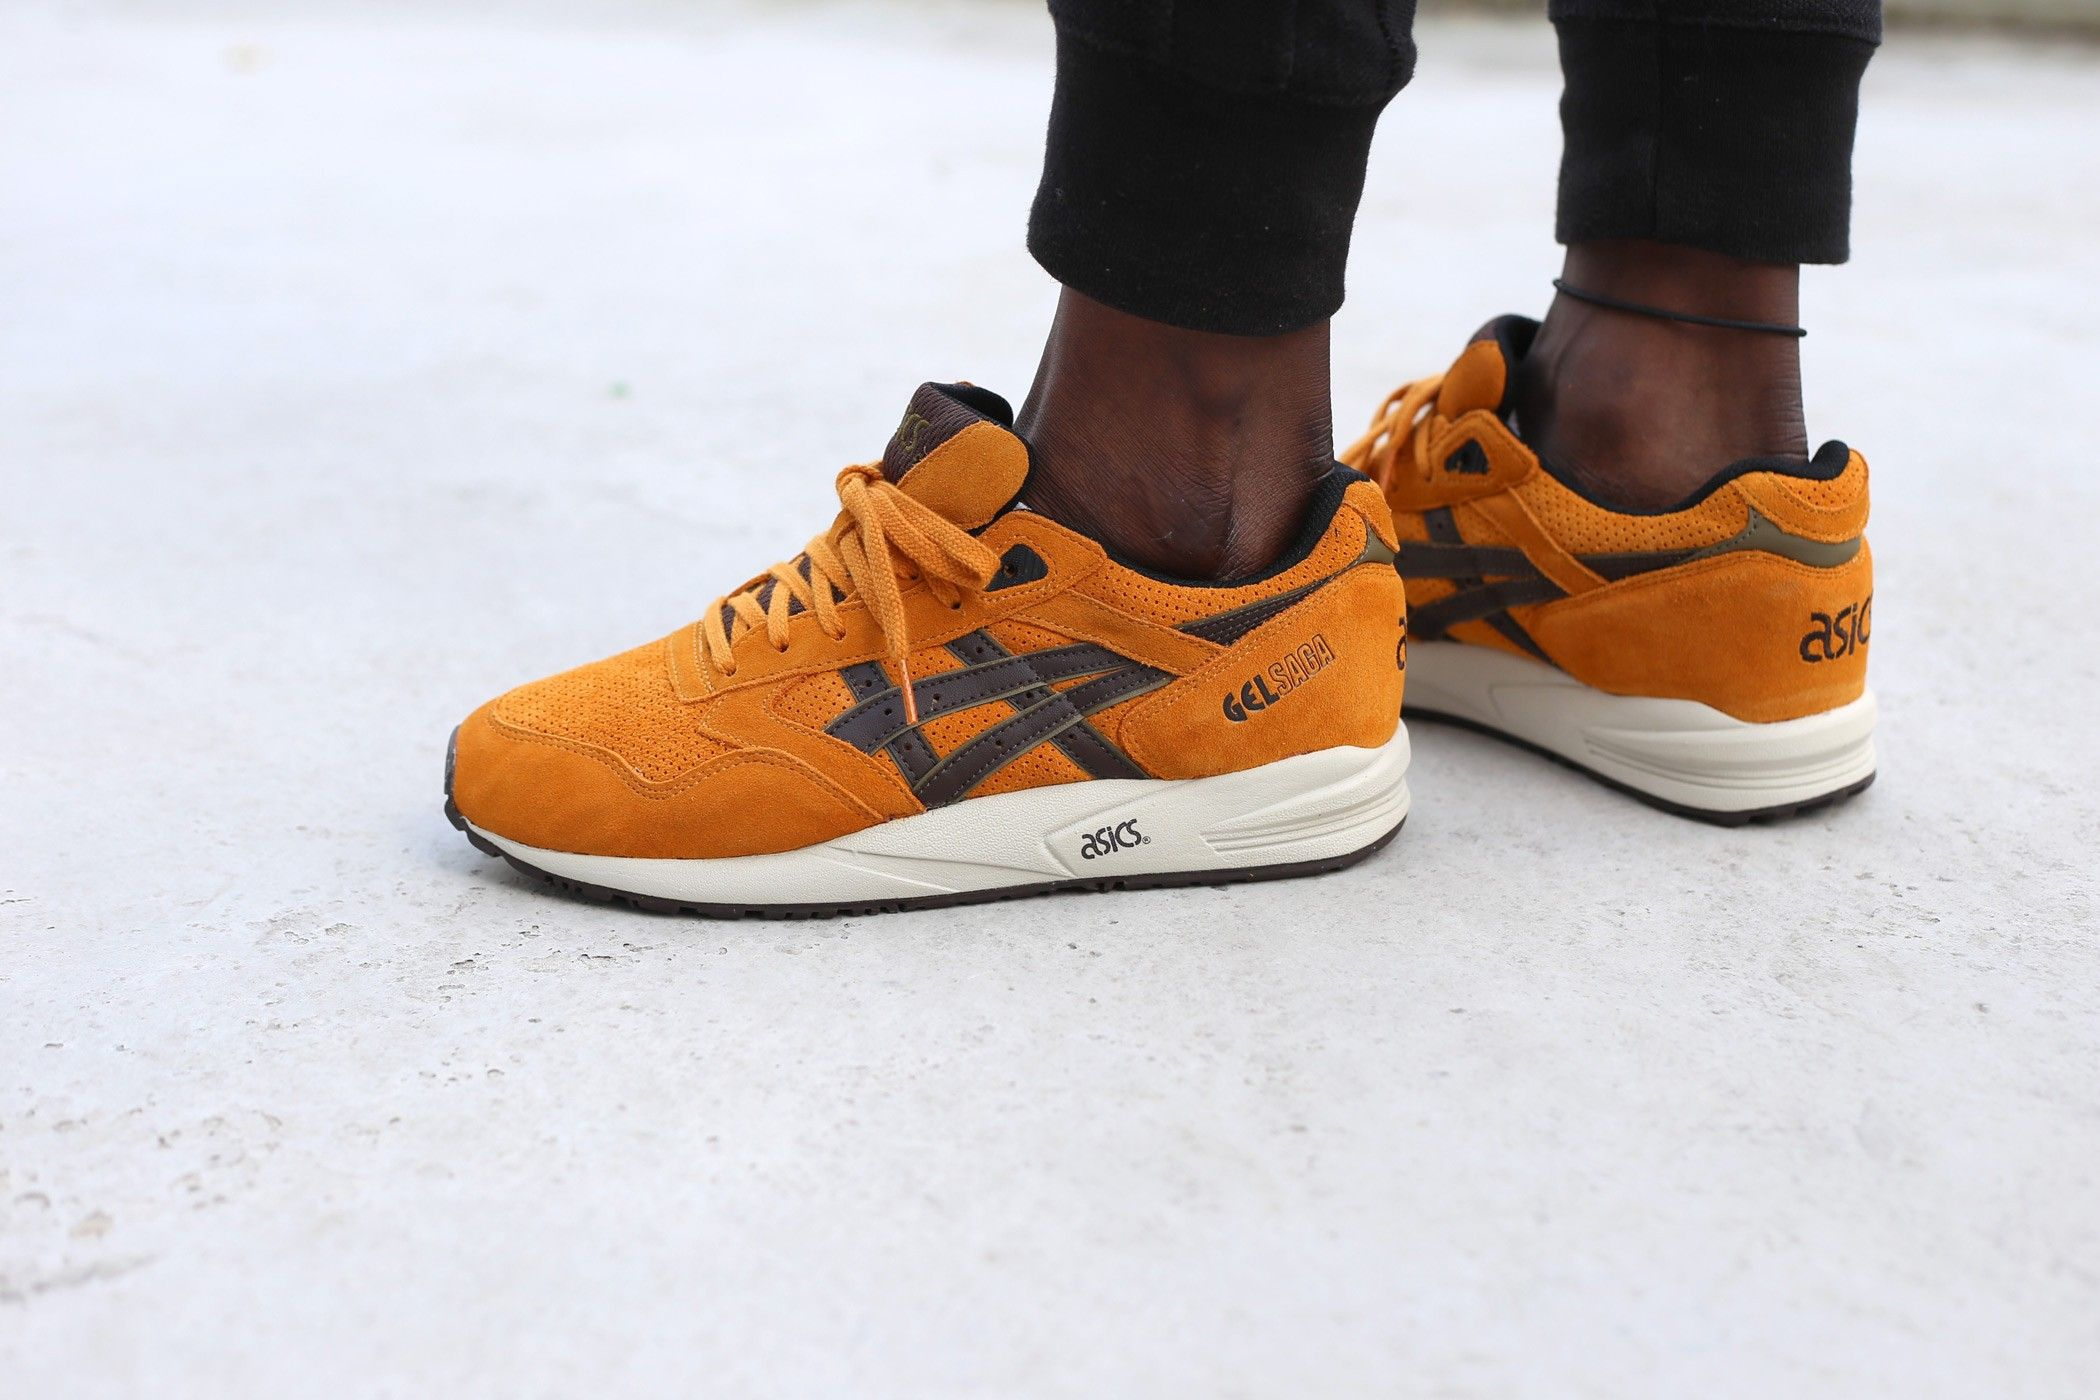 ASICS GEL SAGA (TAN / DARK BROWN)